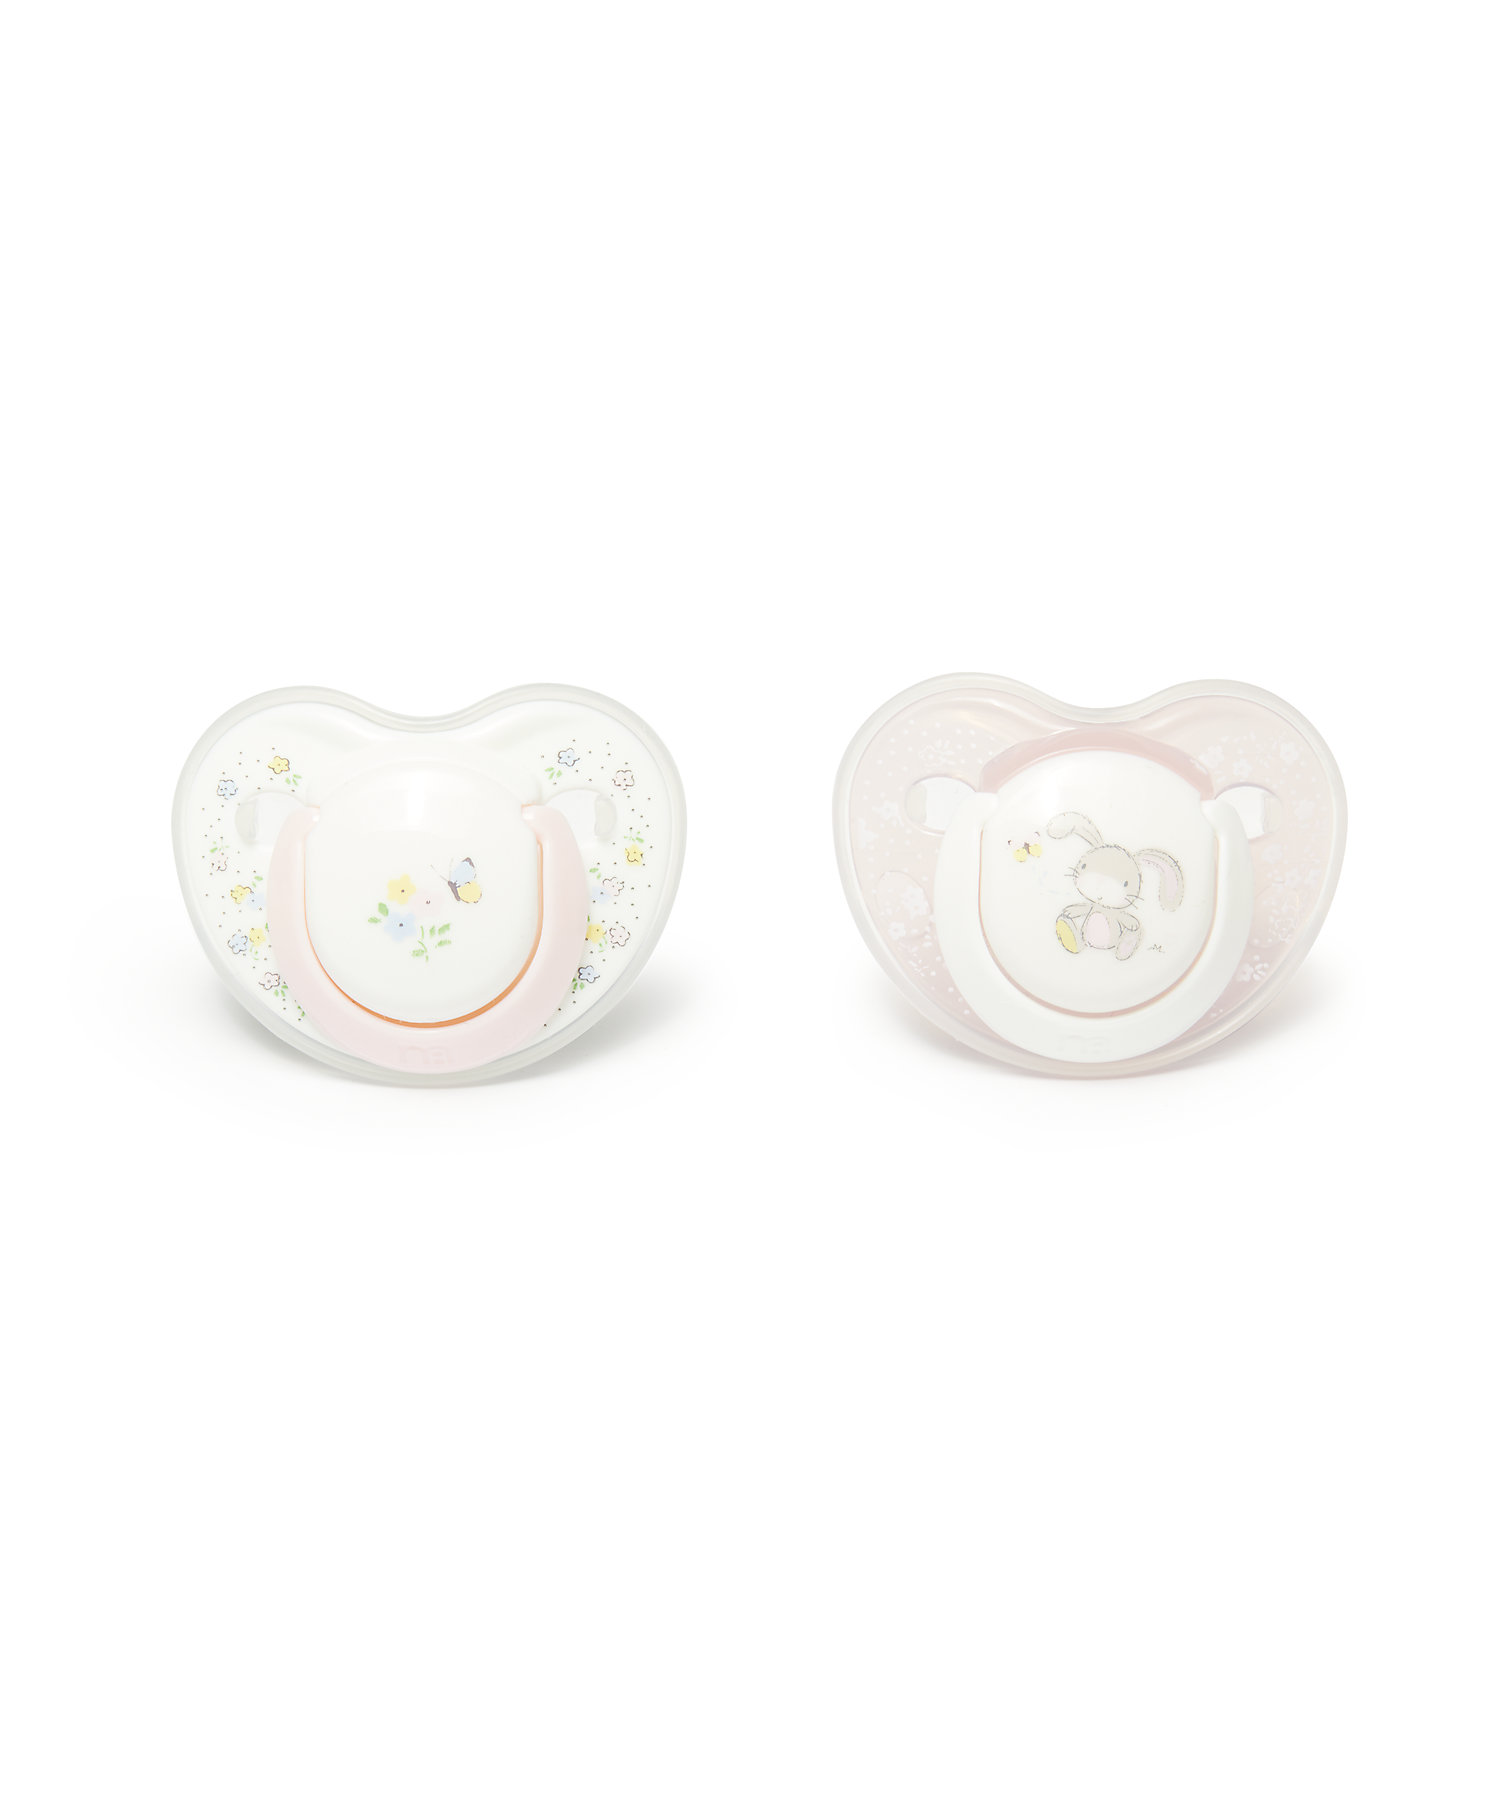 Mothercare   Mothercare Spring Flower Baby Soother 0-6Months - 2 Pack